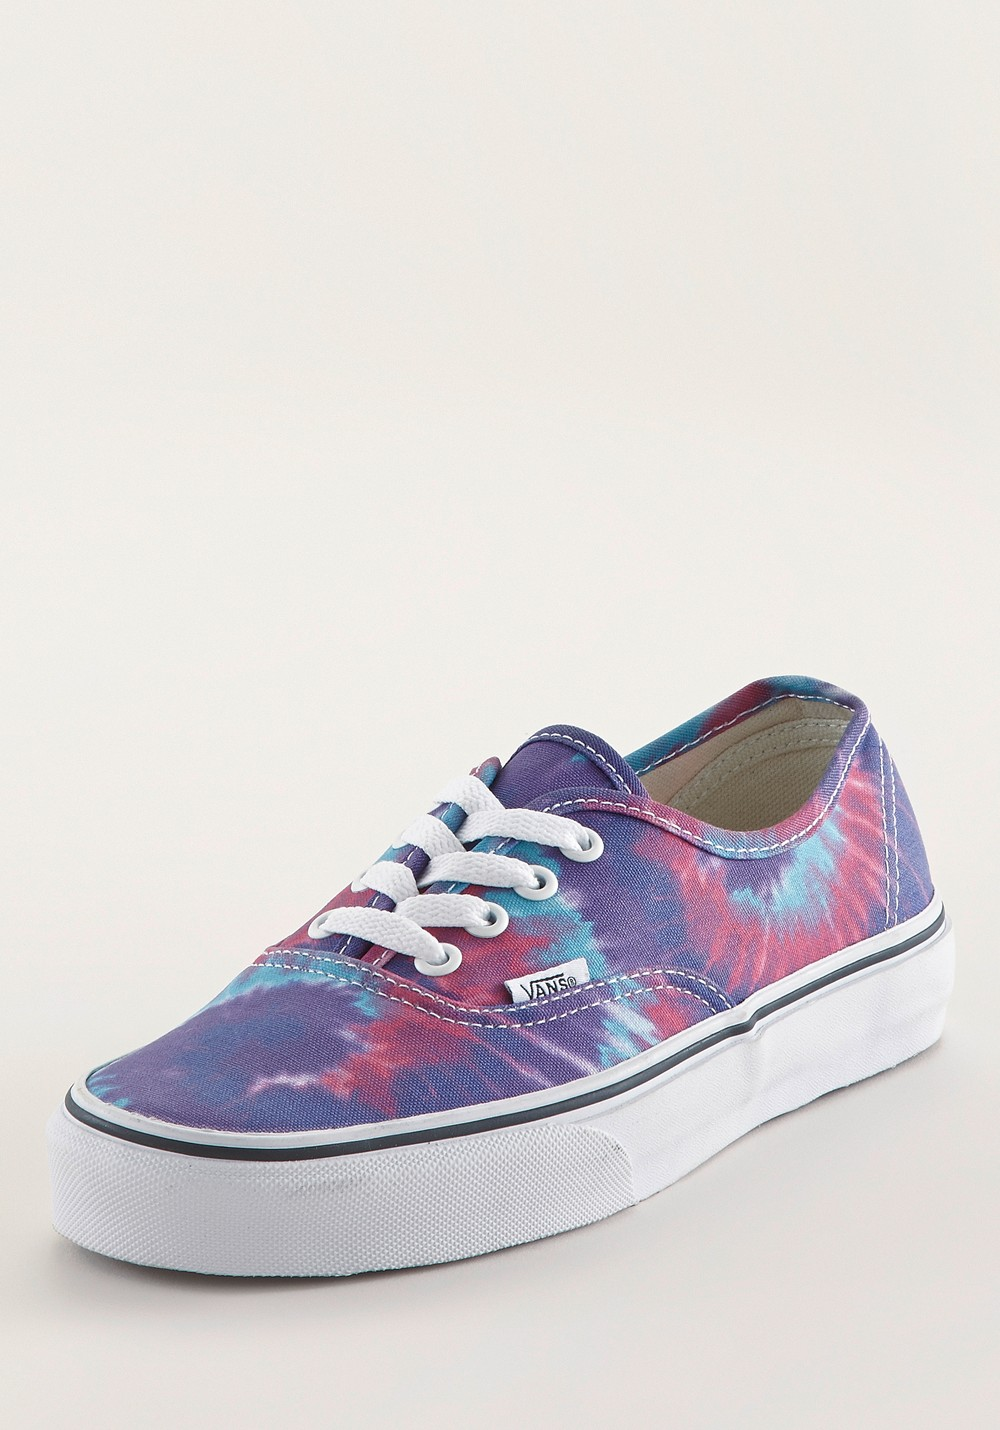 VANS Authentic Canvas Tie Dye Vans | frontlineshop.com